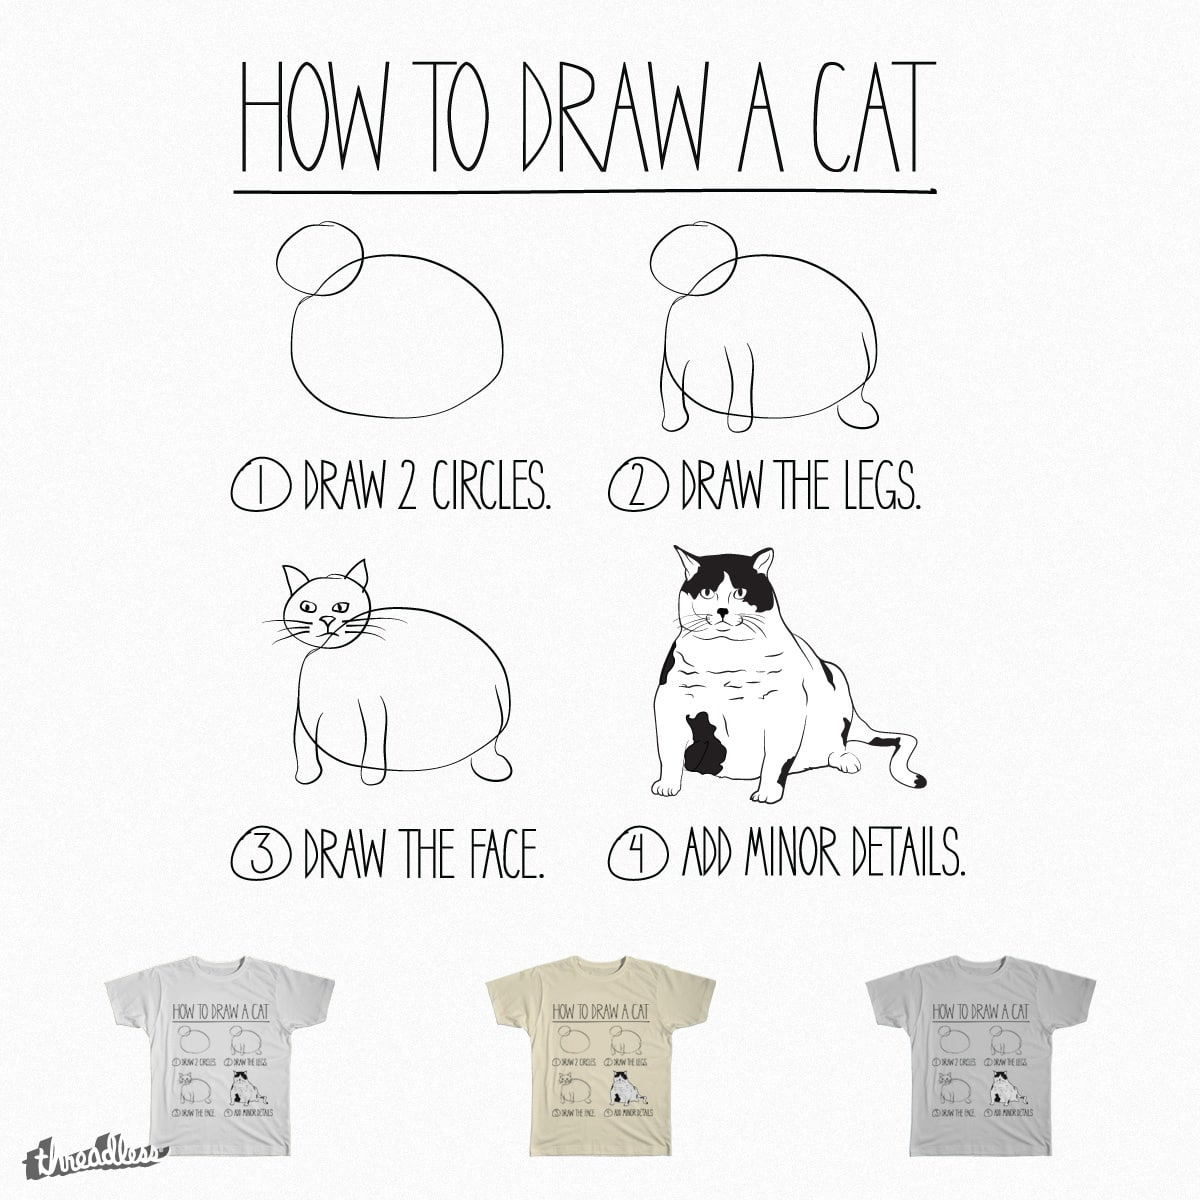 How To Draw A Cat by PolySciGuy on Threadless